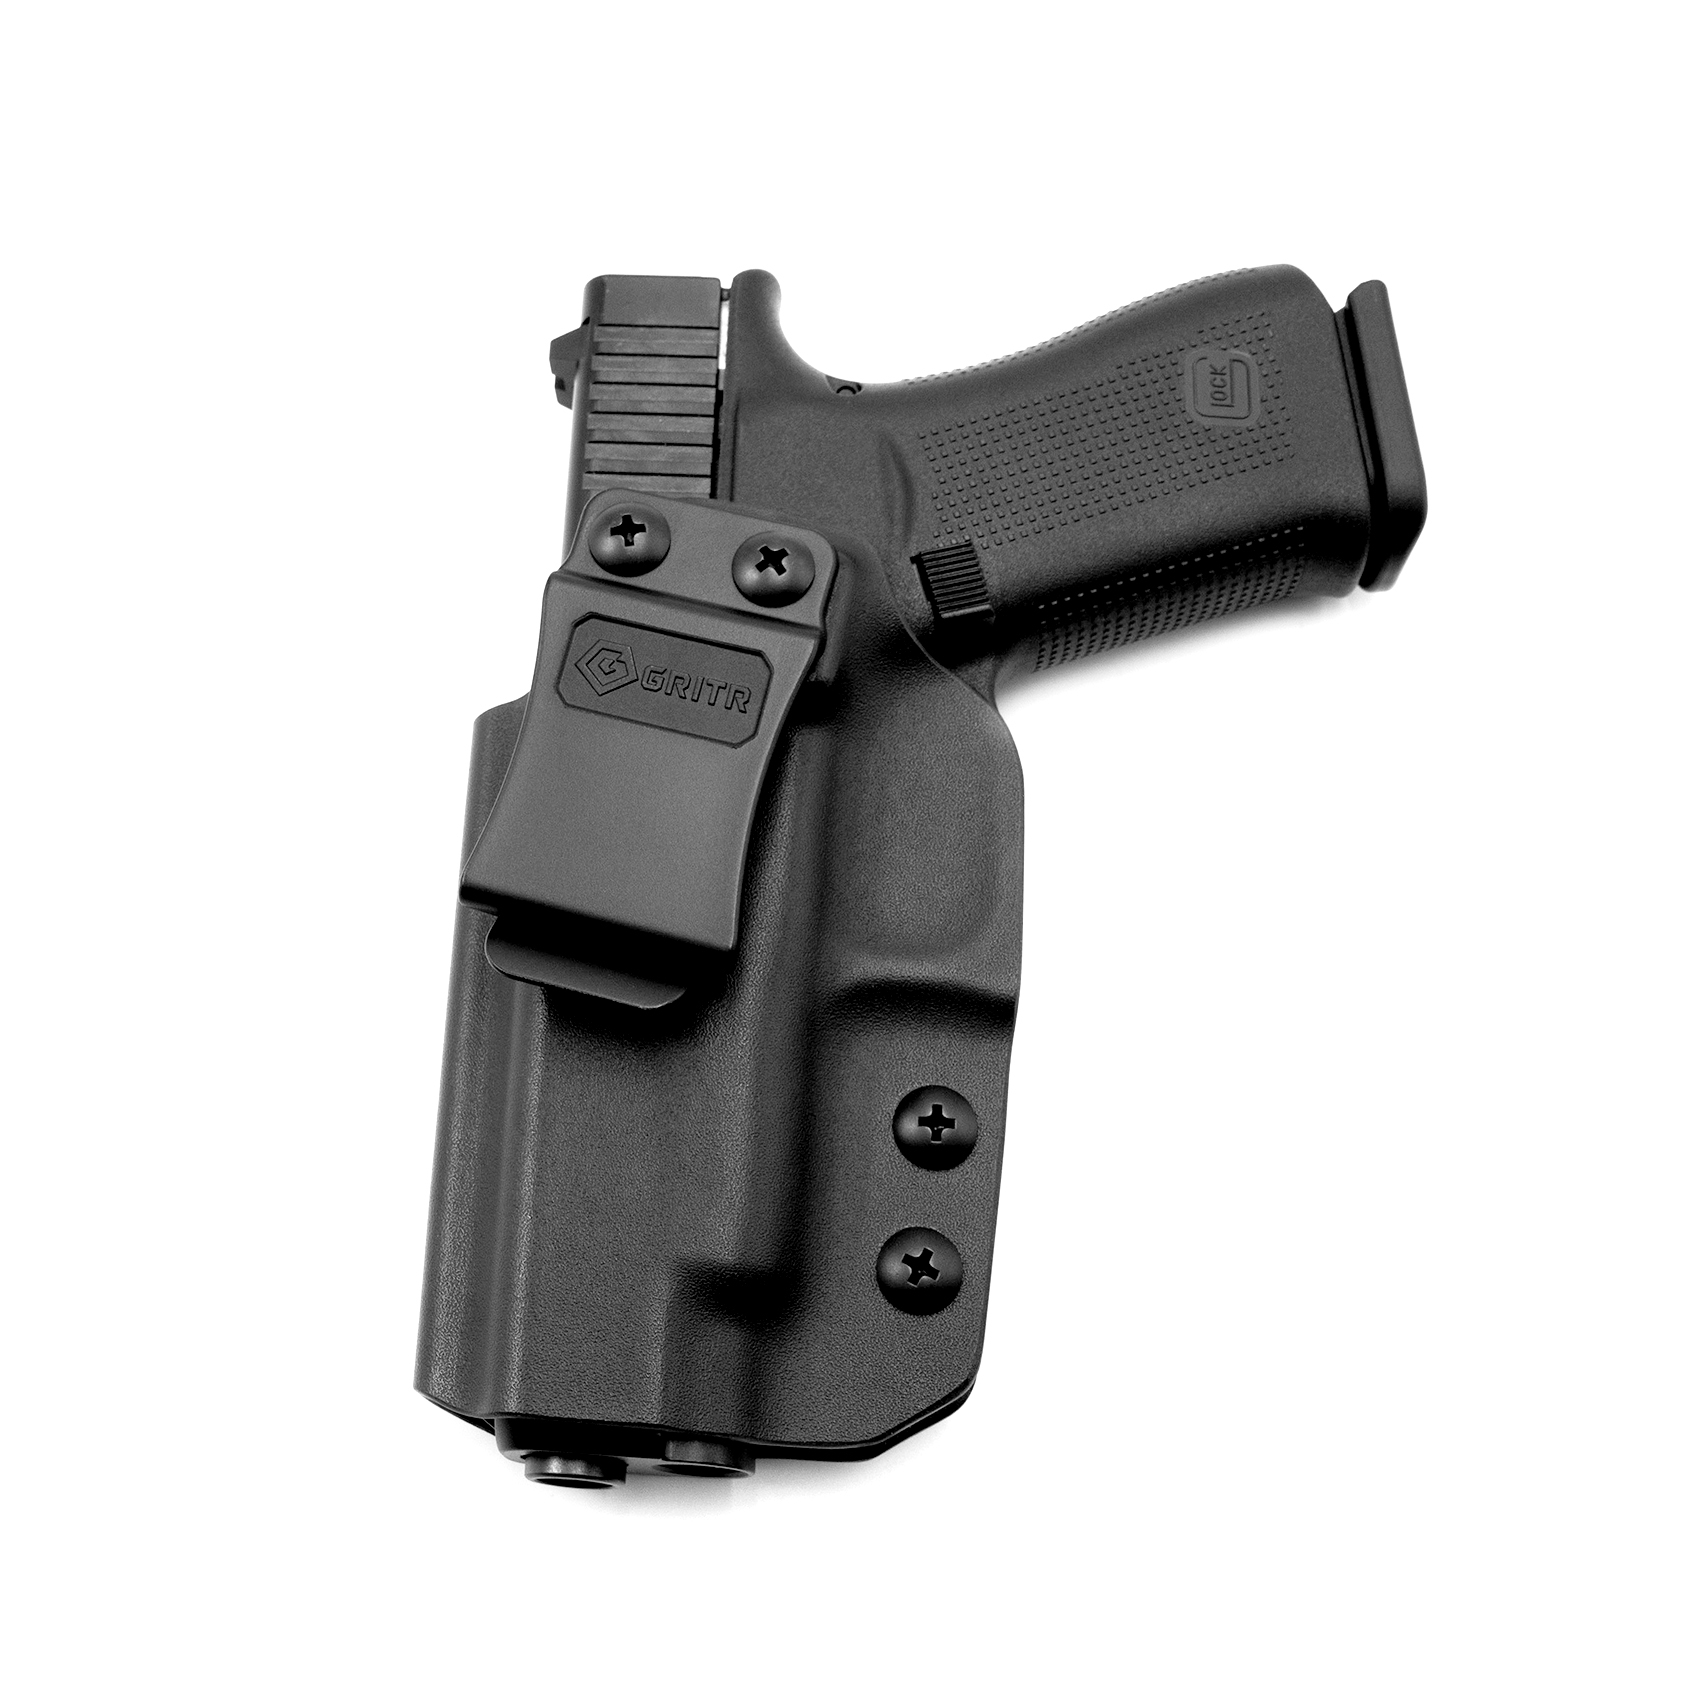 Details about Gritr Holsters for Glock 43X and Glock 48, Made in USA,  KYDEX, IWB Holster